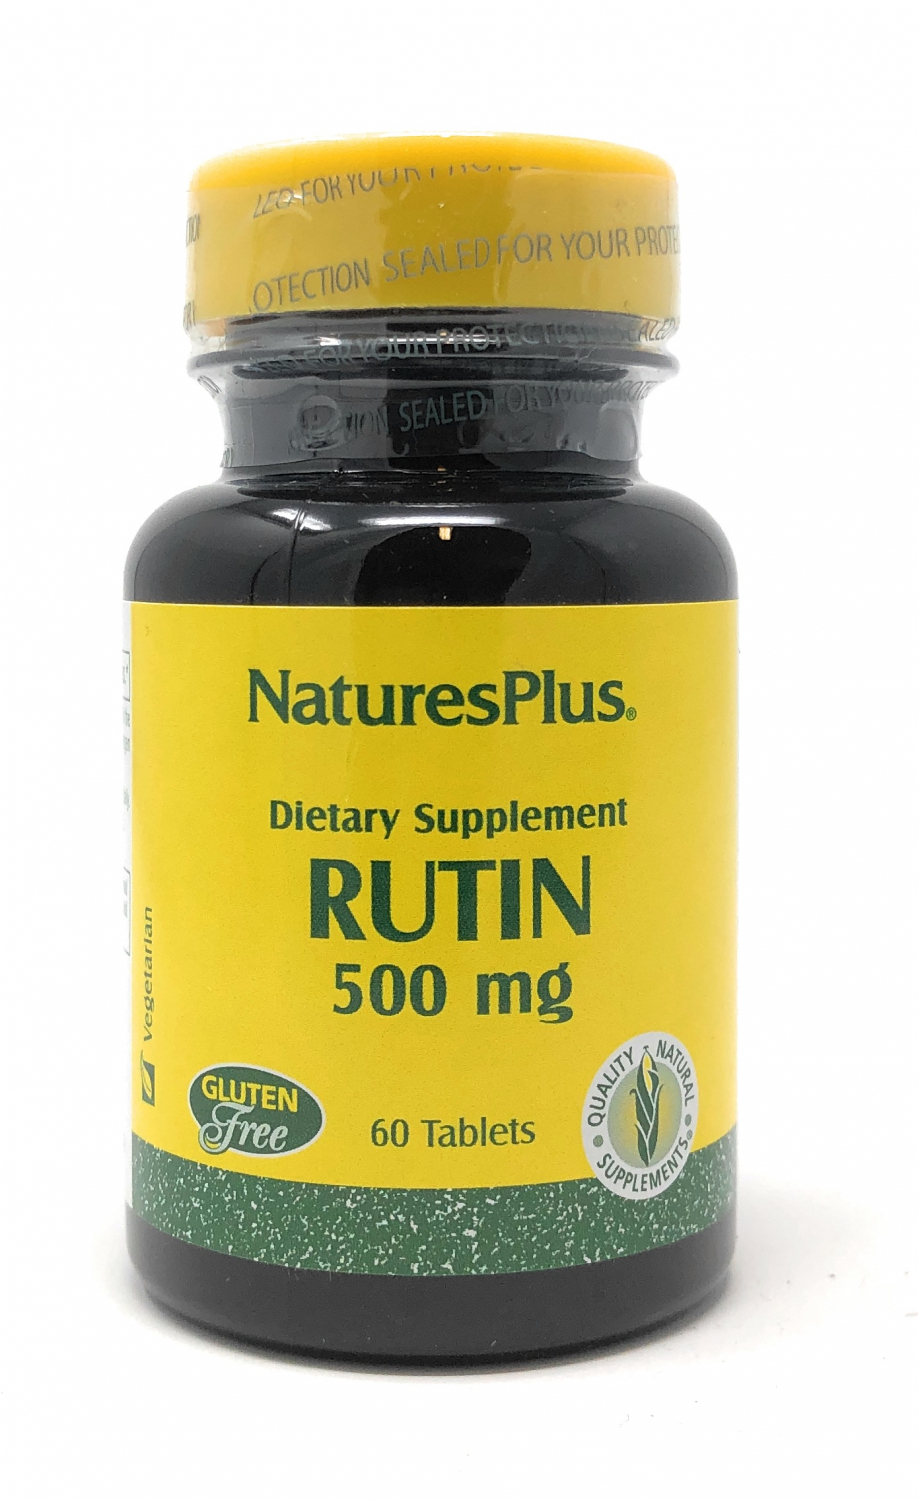 Natures Plus Rutin 500mg 60 Tabletten (45,7g)